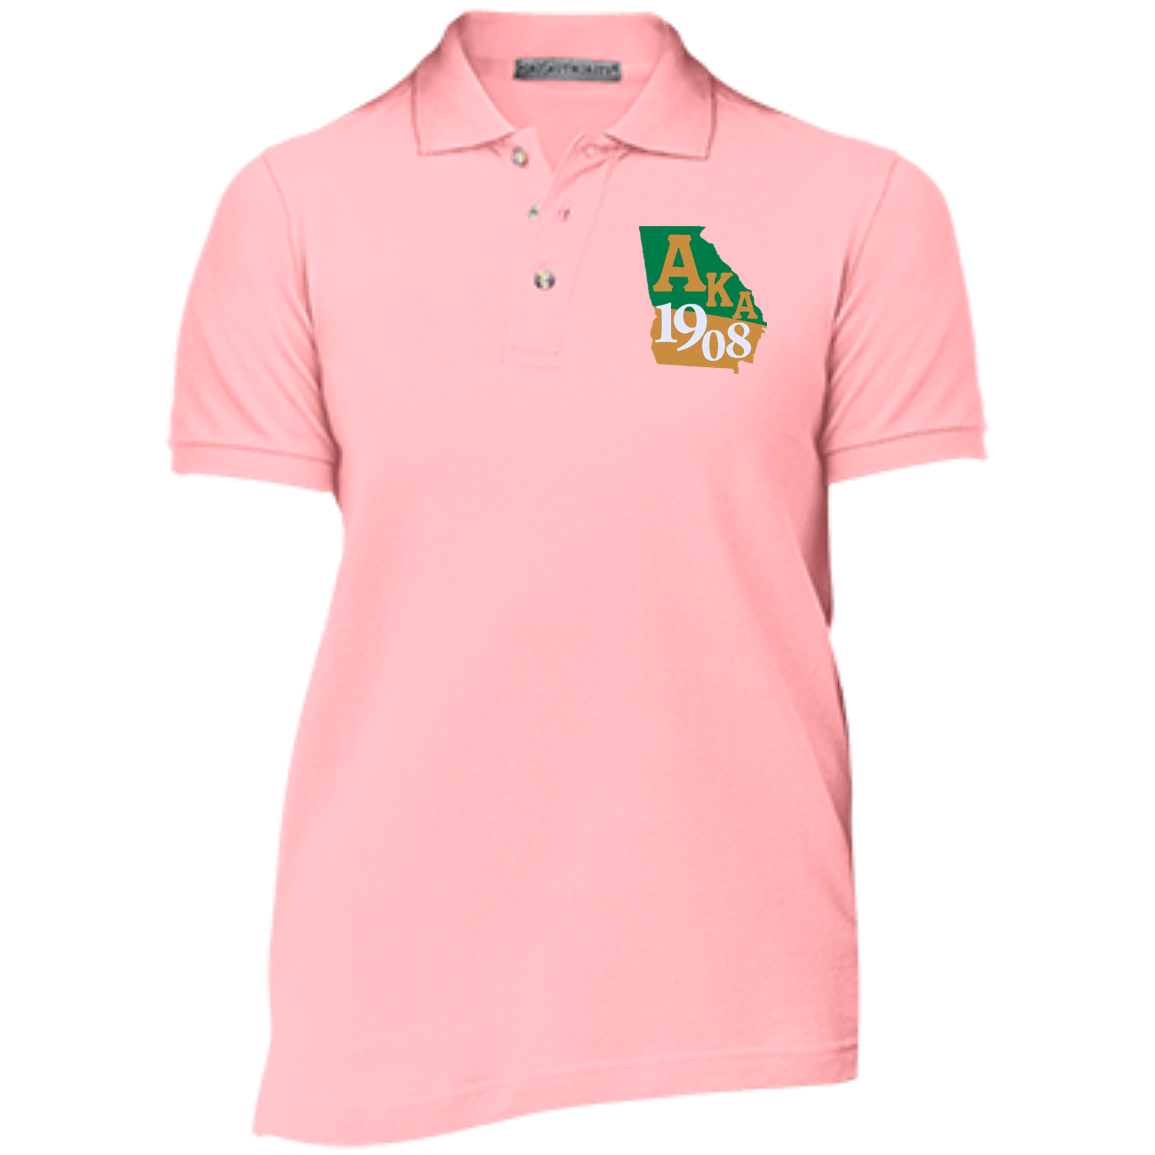 Ladies' Cotton Pique Knit Polo